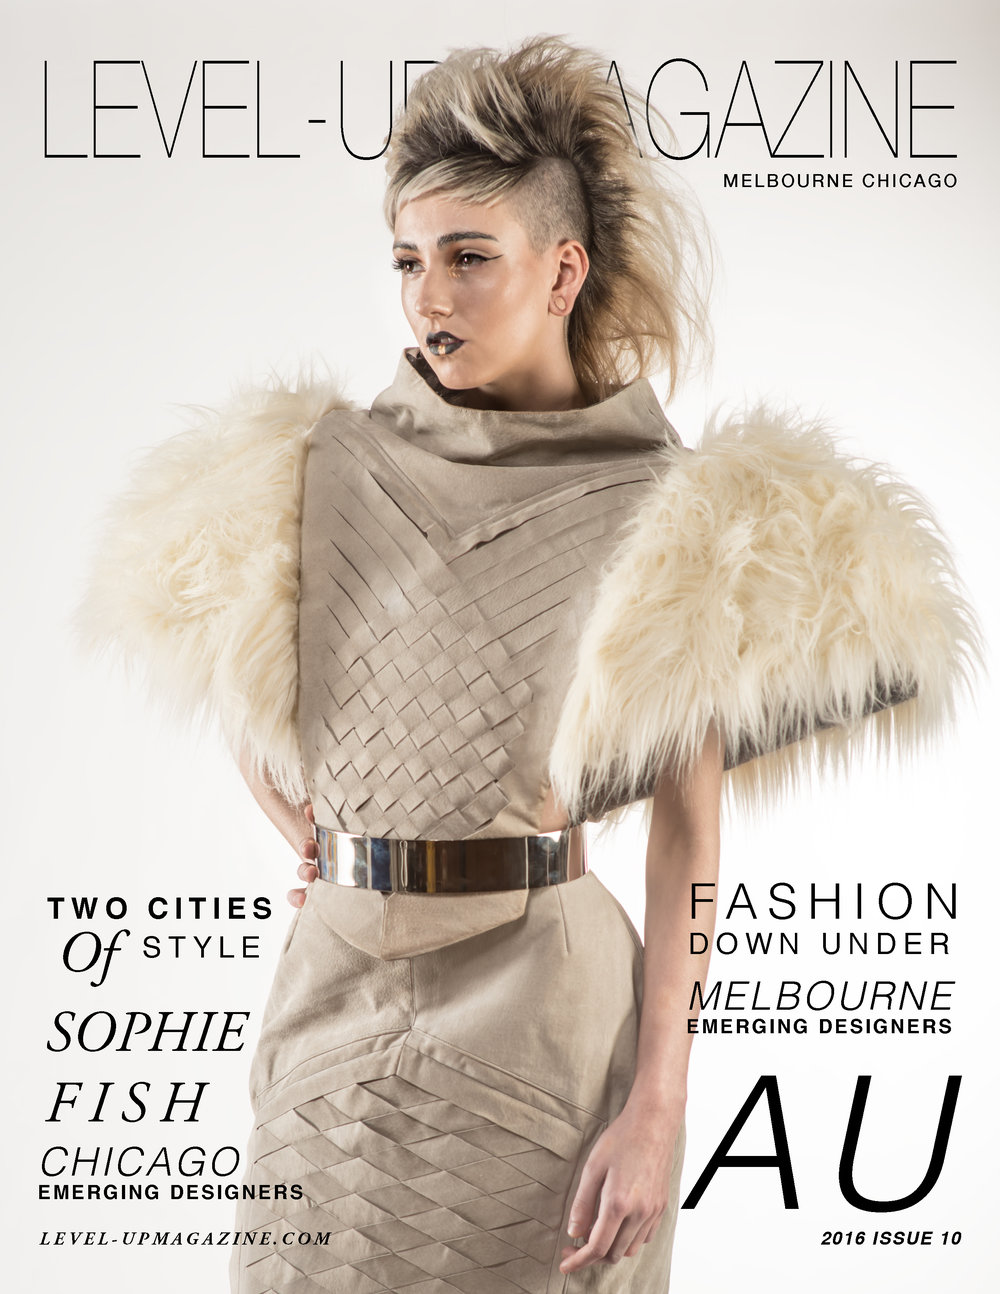 ISSUE #10 - Sophie Fish To celebrate our rst international fashion edition, we're kicking it o with #MELBOURNECHICAGO featuring Australian front cover model Sophie Fish and Malaysian designer Yang TC : 2014 Fashion Masters graduate. Clearly, a force to be reckoned with in the emerging designer market, we met Yang at First Kiss Fashion Show last year and from the rst time we saw his garments, we knew we had to feature him in an upcoming issue. In the next few pages, you're going to witness the culmination of our year in Melbourne. In this issue, we are proud to feature Australian designer Nixi Killick and our favorite international brand based in Chicago; Iridium Clothing. Order your copy today!